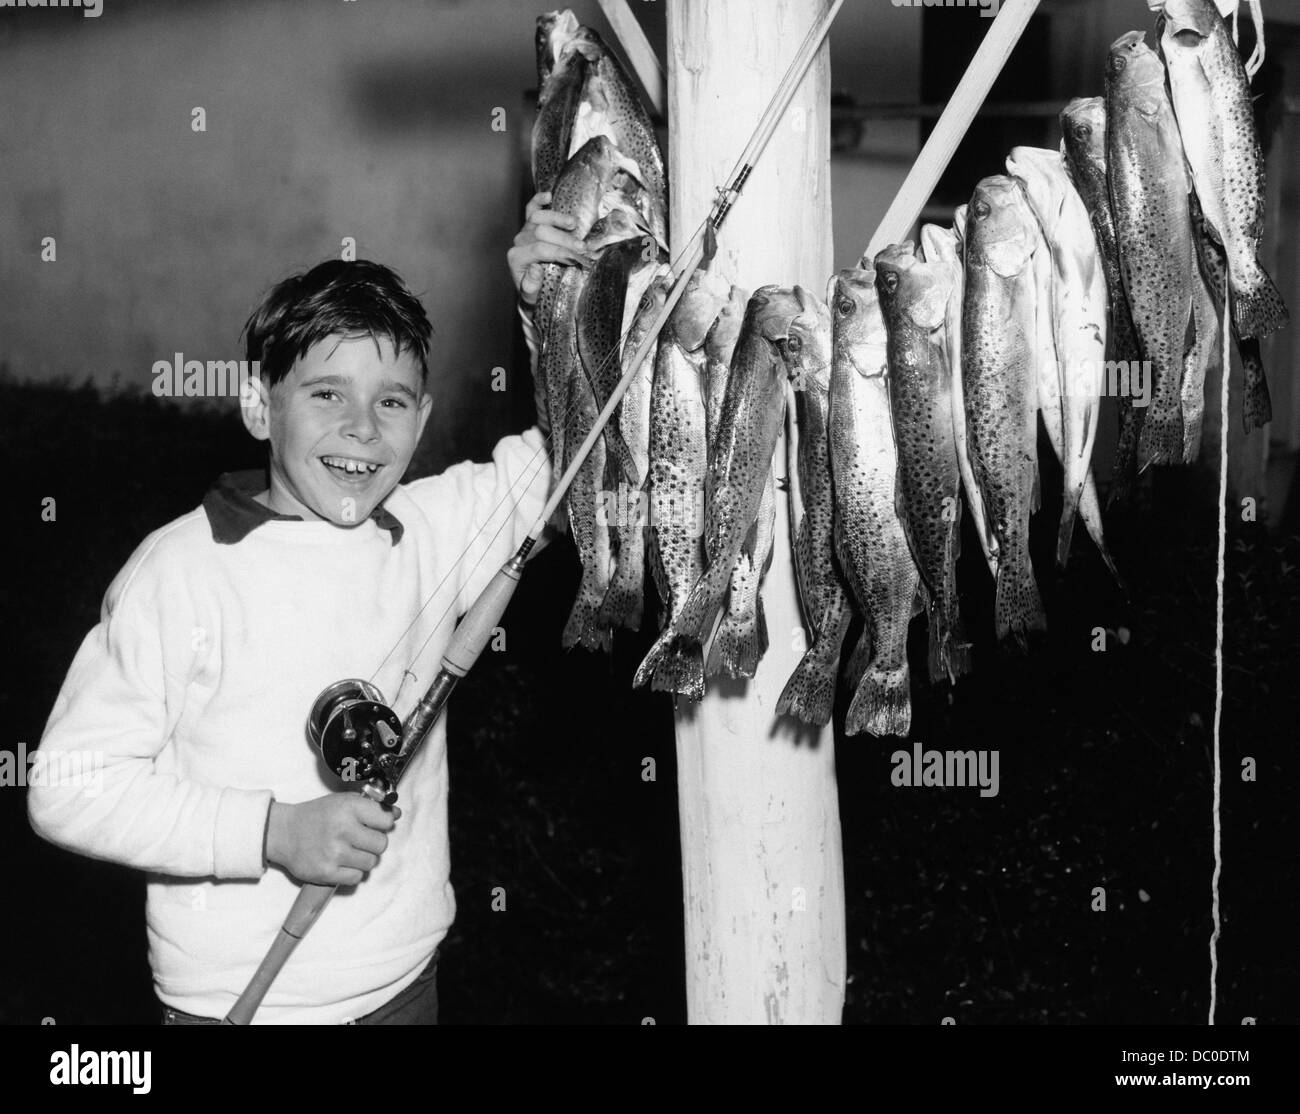 1950s SMILING BOY PROUDLY DISPLAYING HIS FISH CATCH LOOKING AT CAMERA - Stock Image